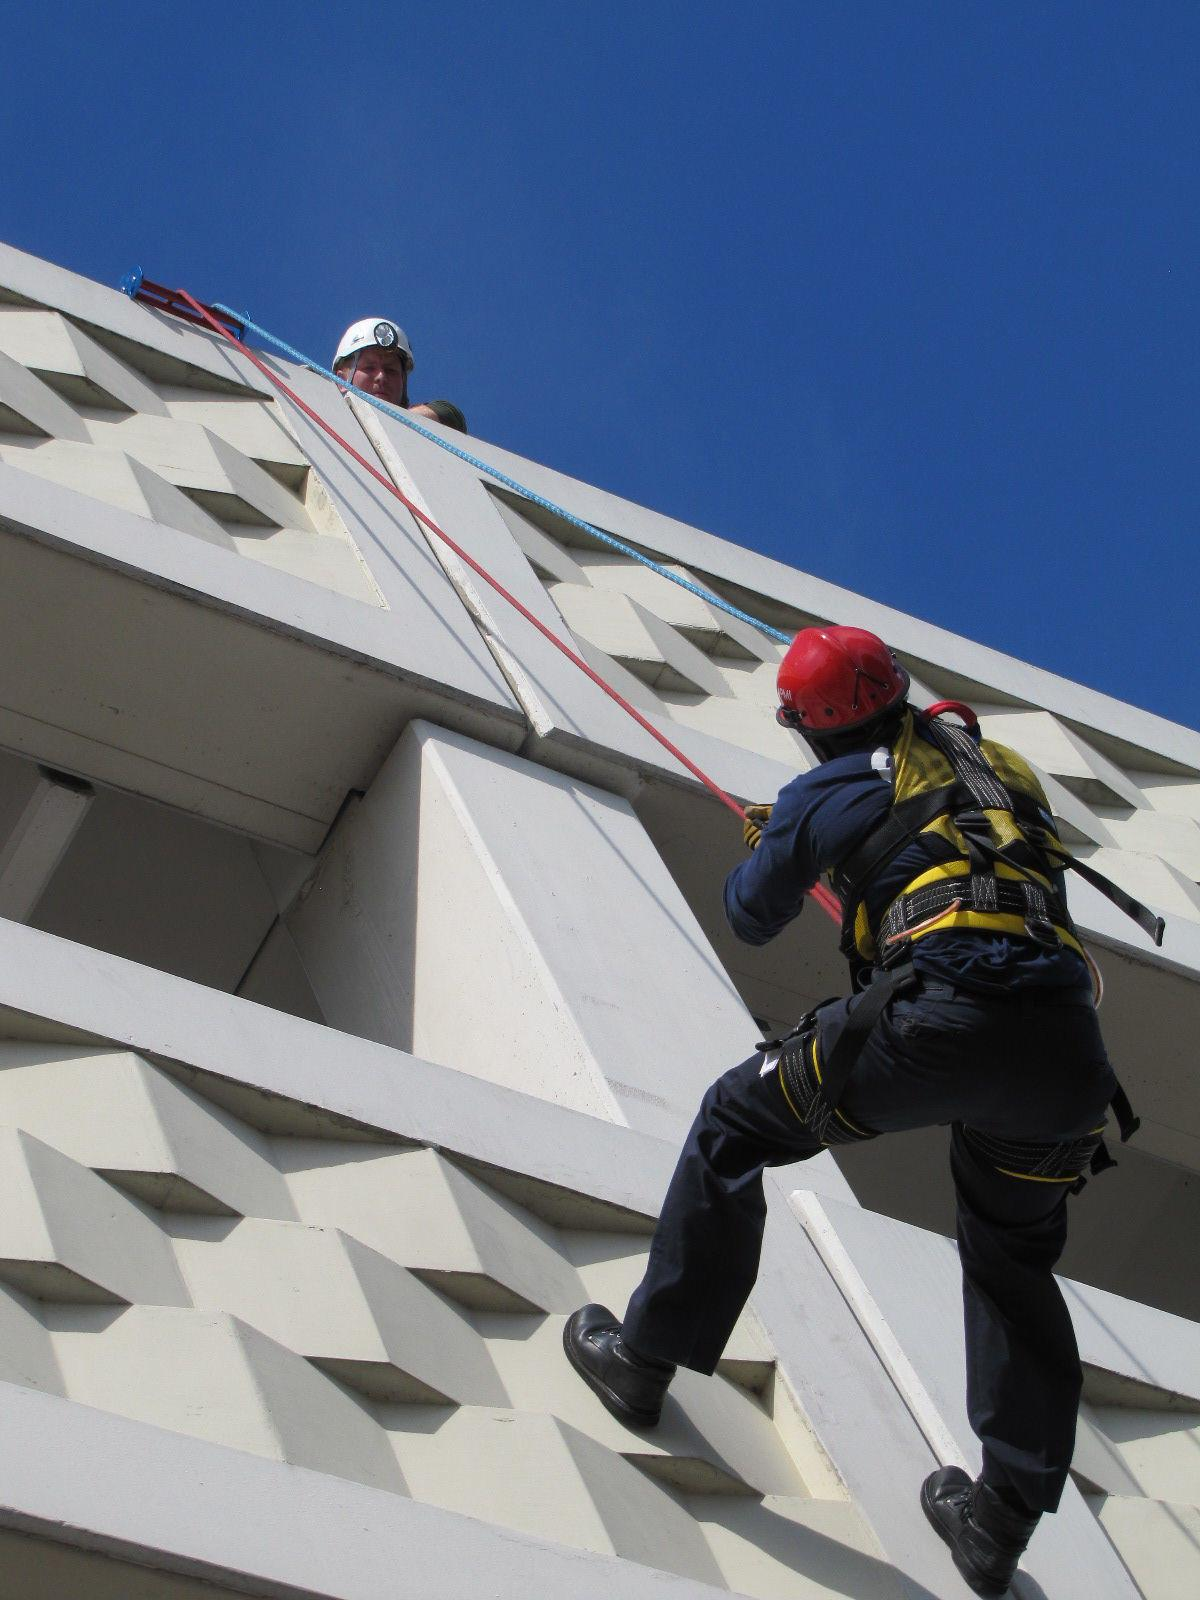 Firefighters learn the ropes of high-rise rescue